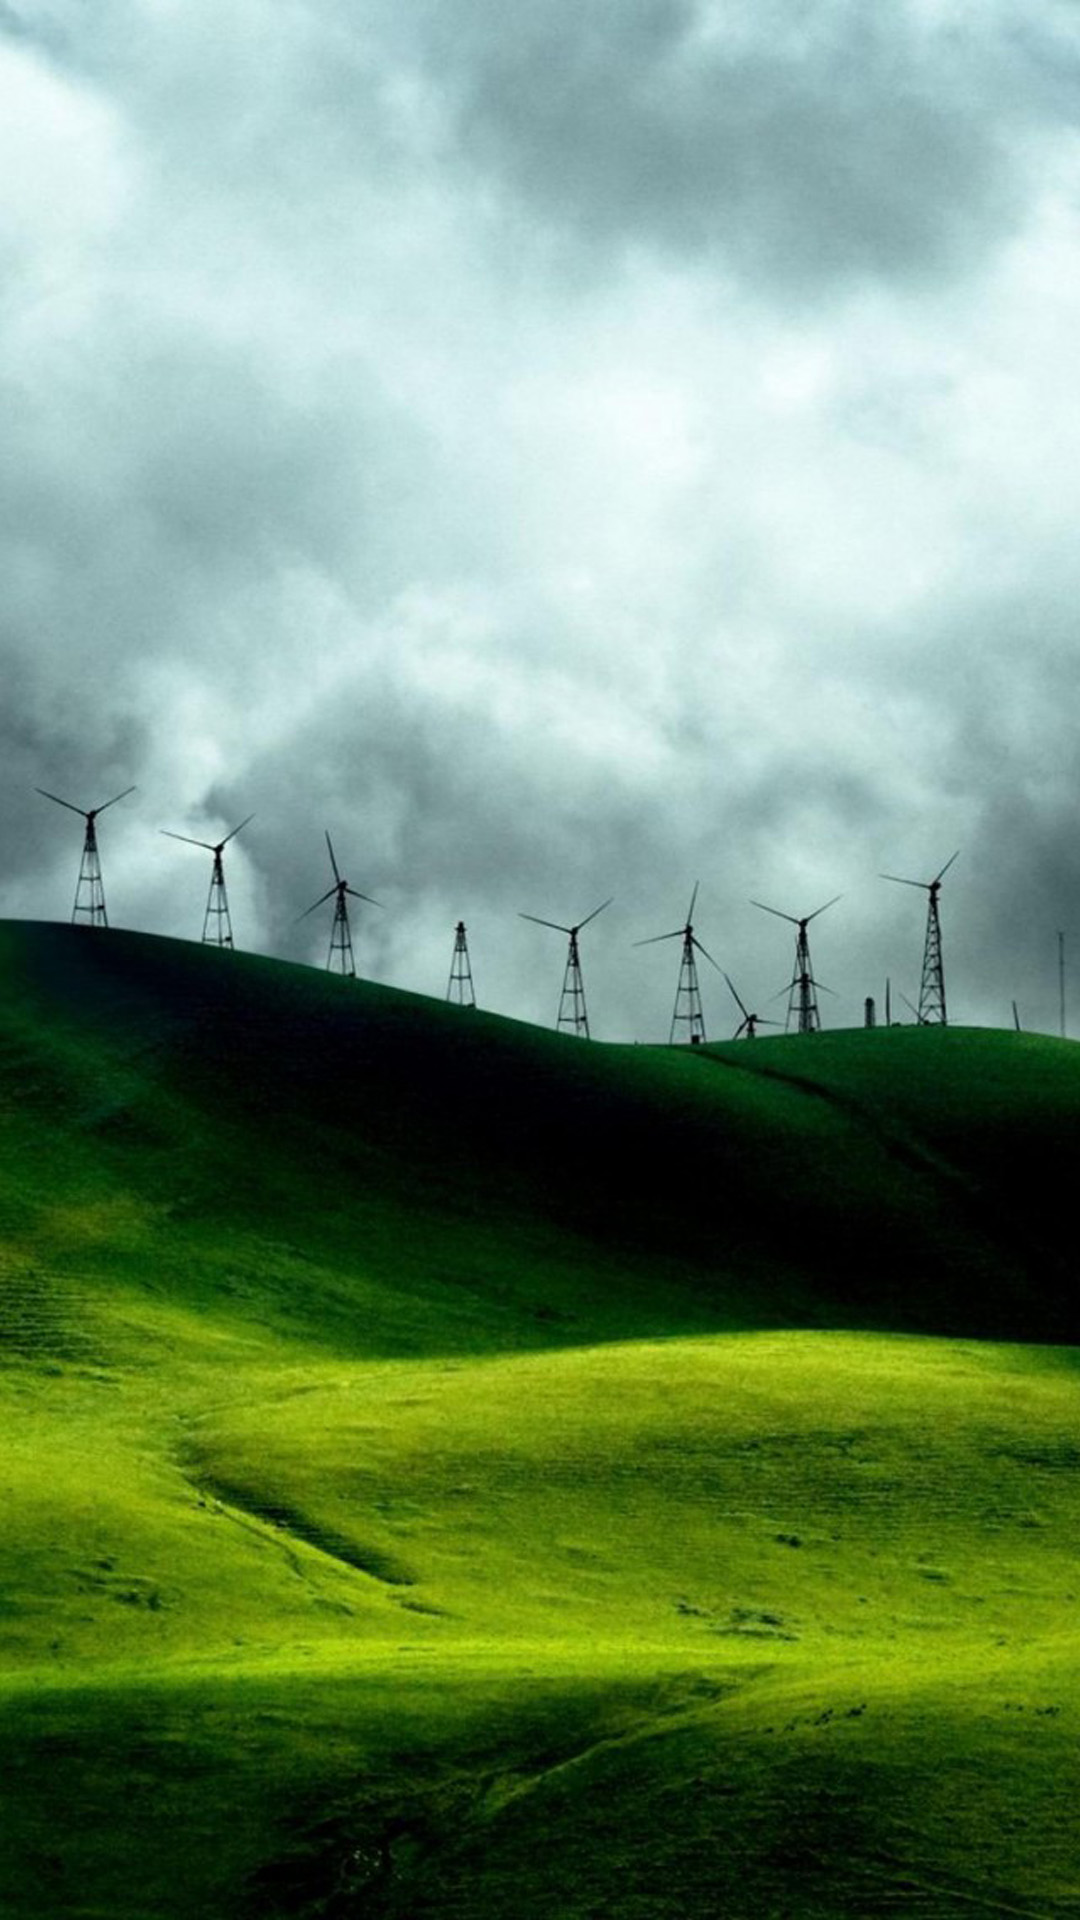 Turbines Landscape Mountains Android Wallpaper Android Hd Wallpapers